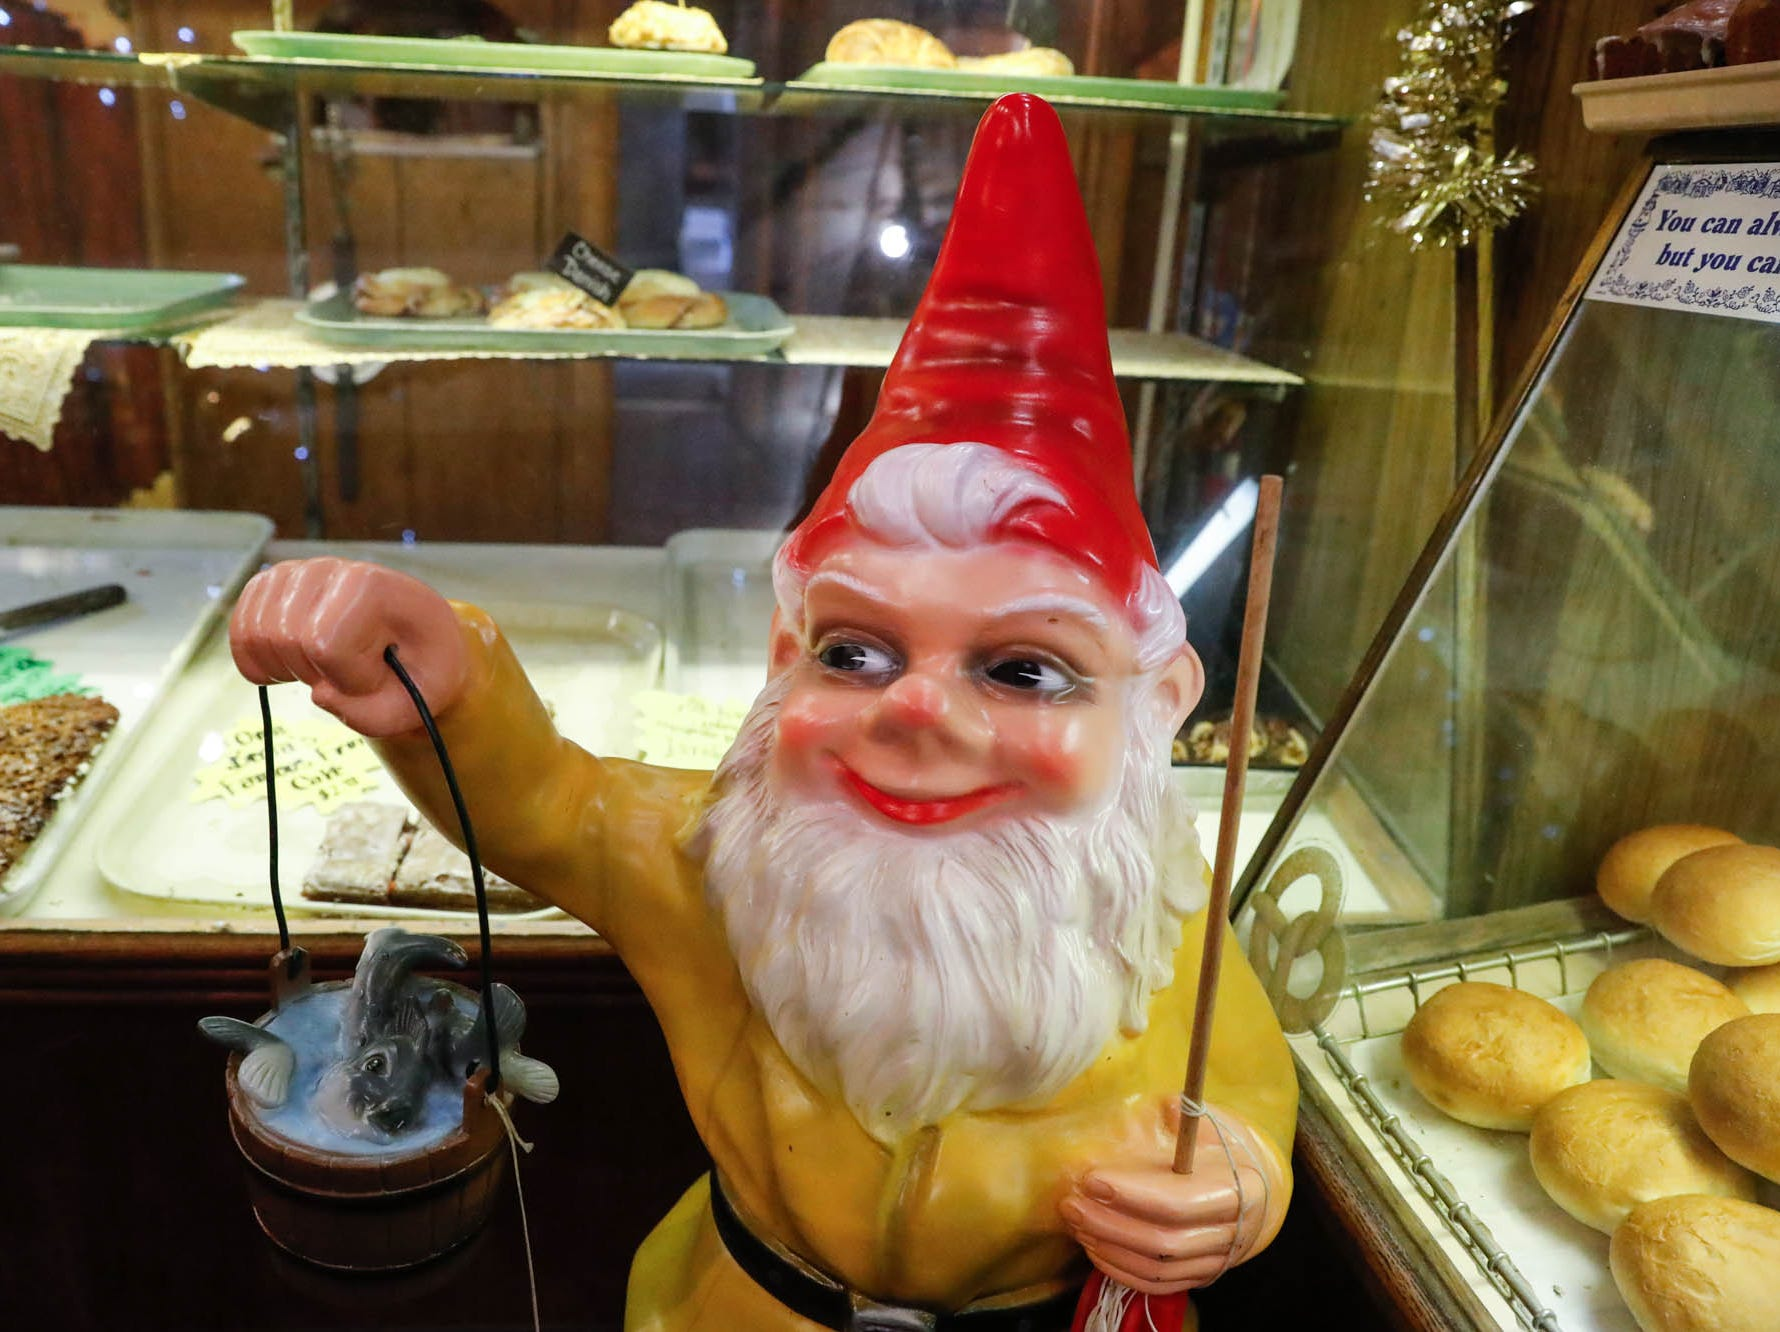 A large gnome welcomes guests to the pastry counter at the Heidelberg Haus Cafe and Bakery, 7625 Pendleton Pike, Indianapolis Ind., on Saturday, Dec. 8th, 2018. The cafe, bakery, and German grocery is well known for its extensive collection of German Kitsch.